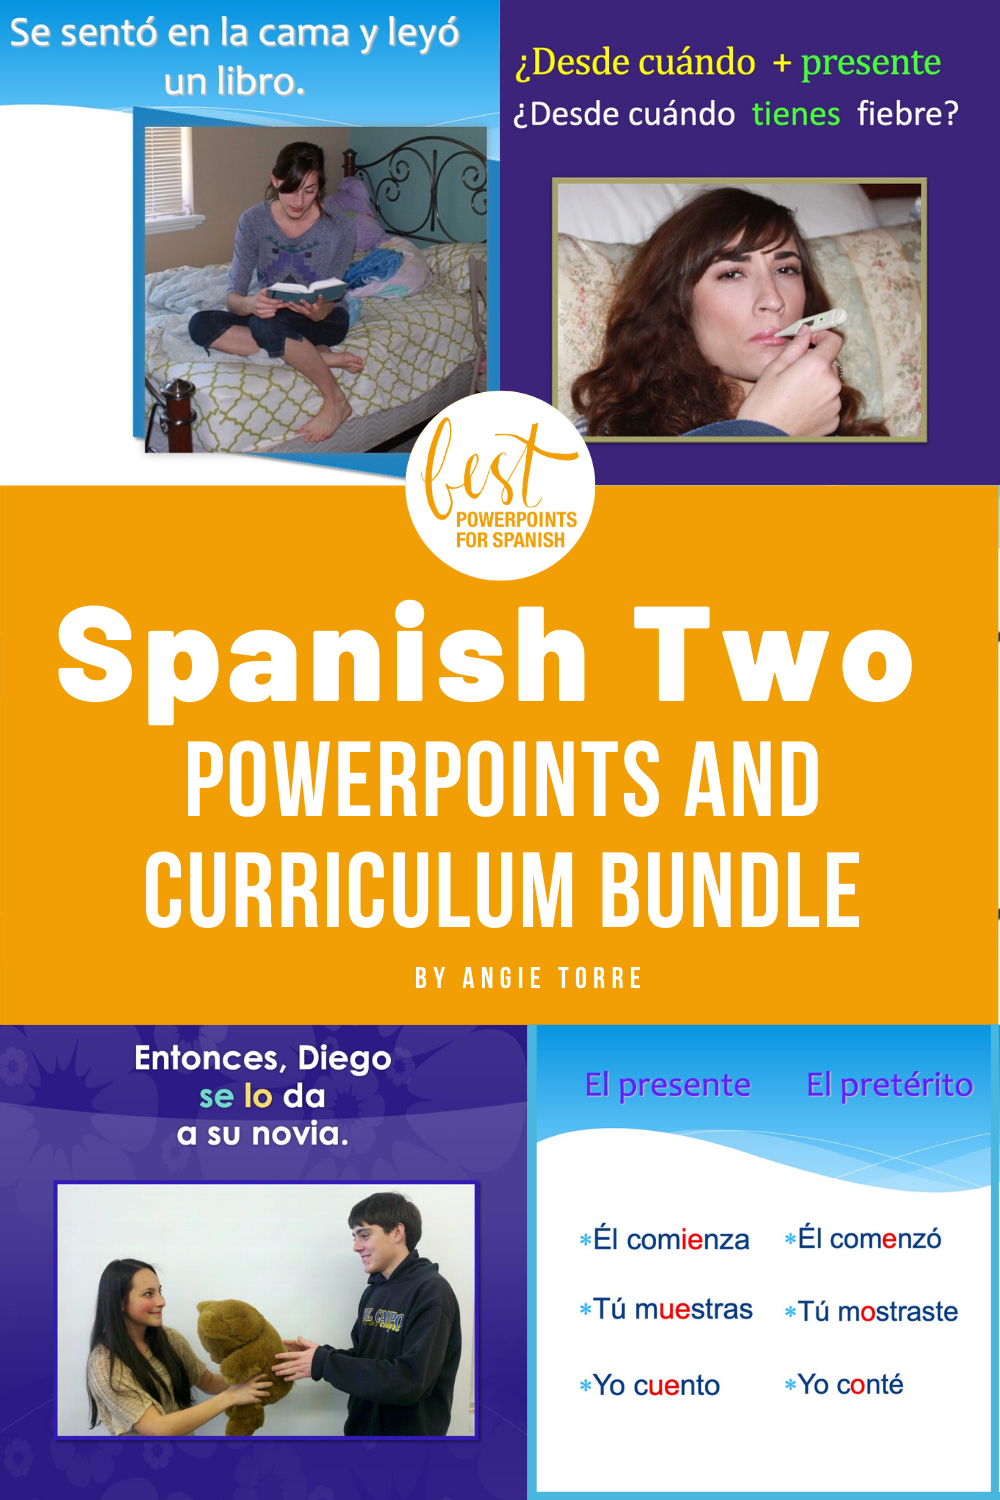 Spanish Two Powerpoints And Curriculum Bundle Spanish Lesson Plans Google Drive Activities Spanish Curriculum